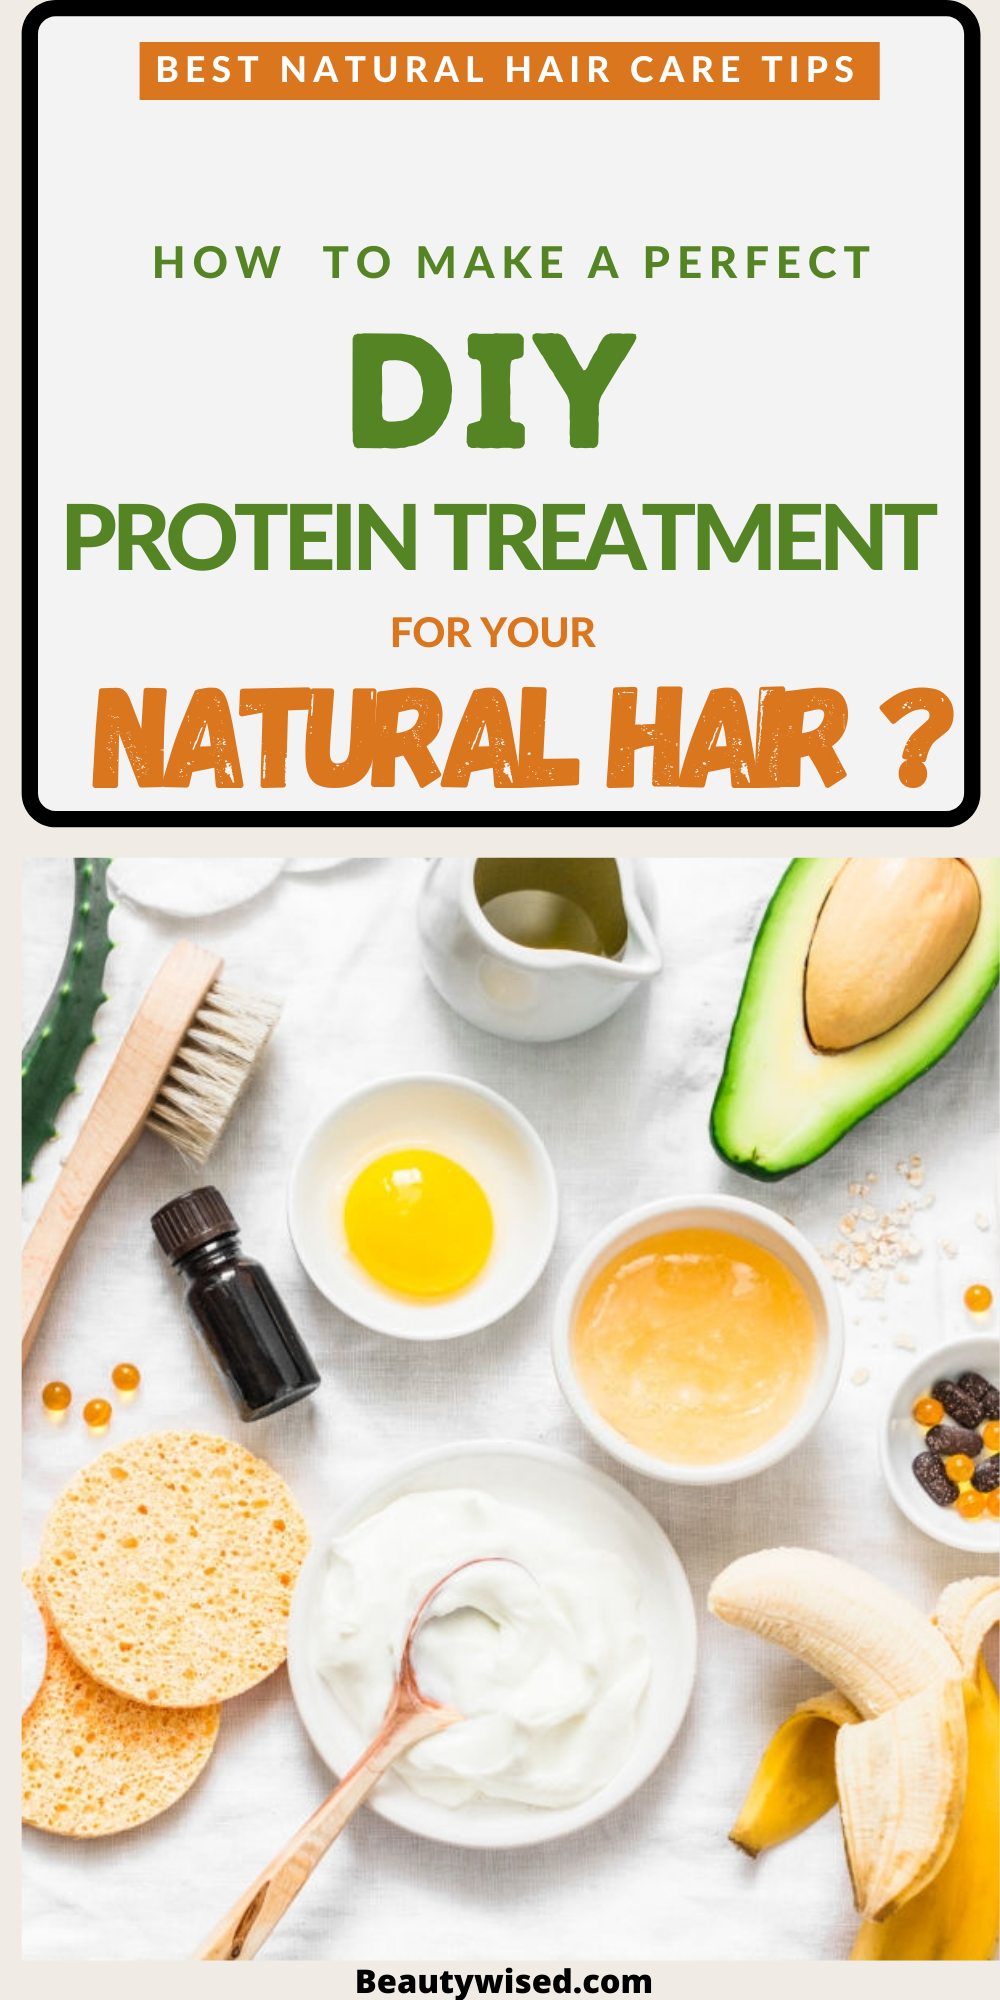 13 Powerful Protein Treatments For Your Natural Hair To Give Them A New Life In 2020 Hair Protein Treatment Products Protein Treatment Natural Hair Protein Treatment